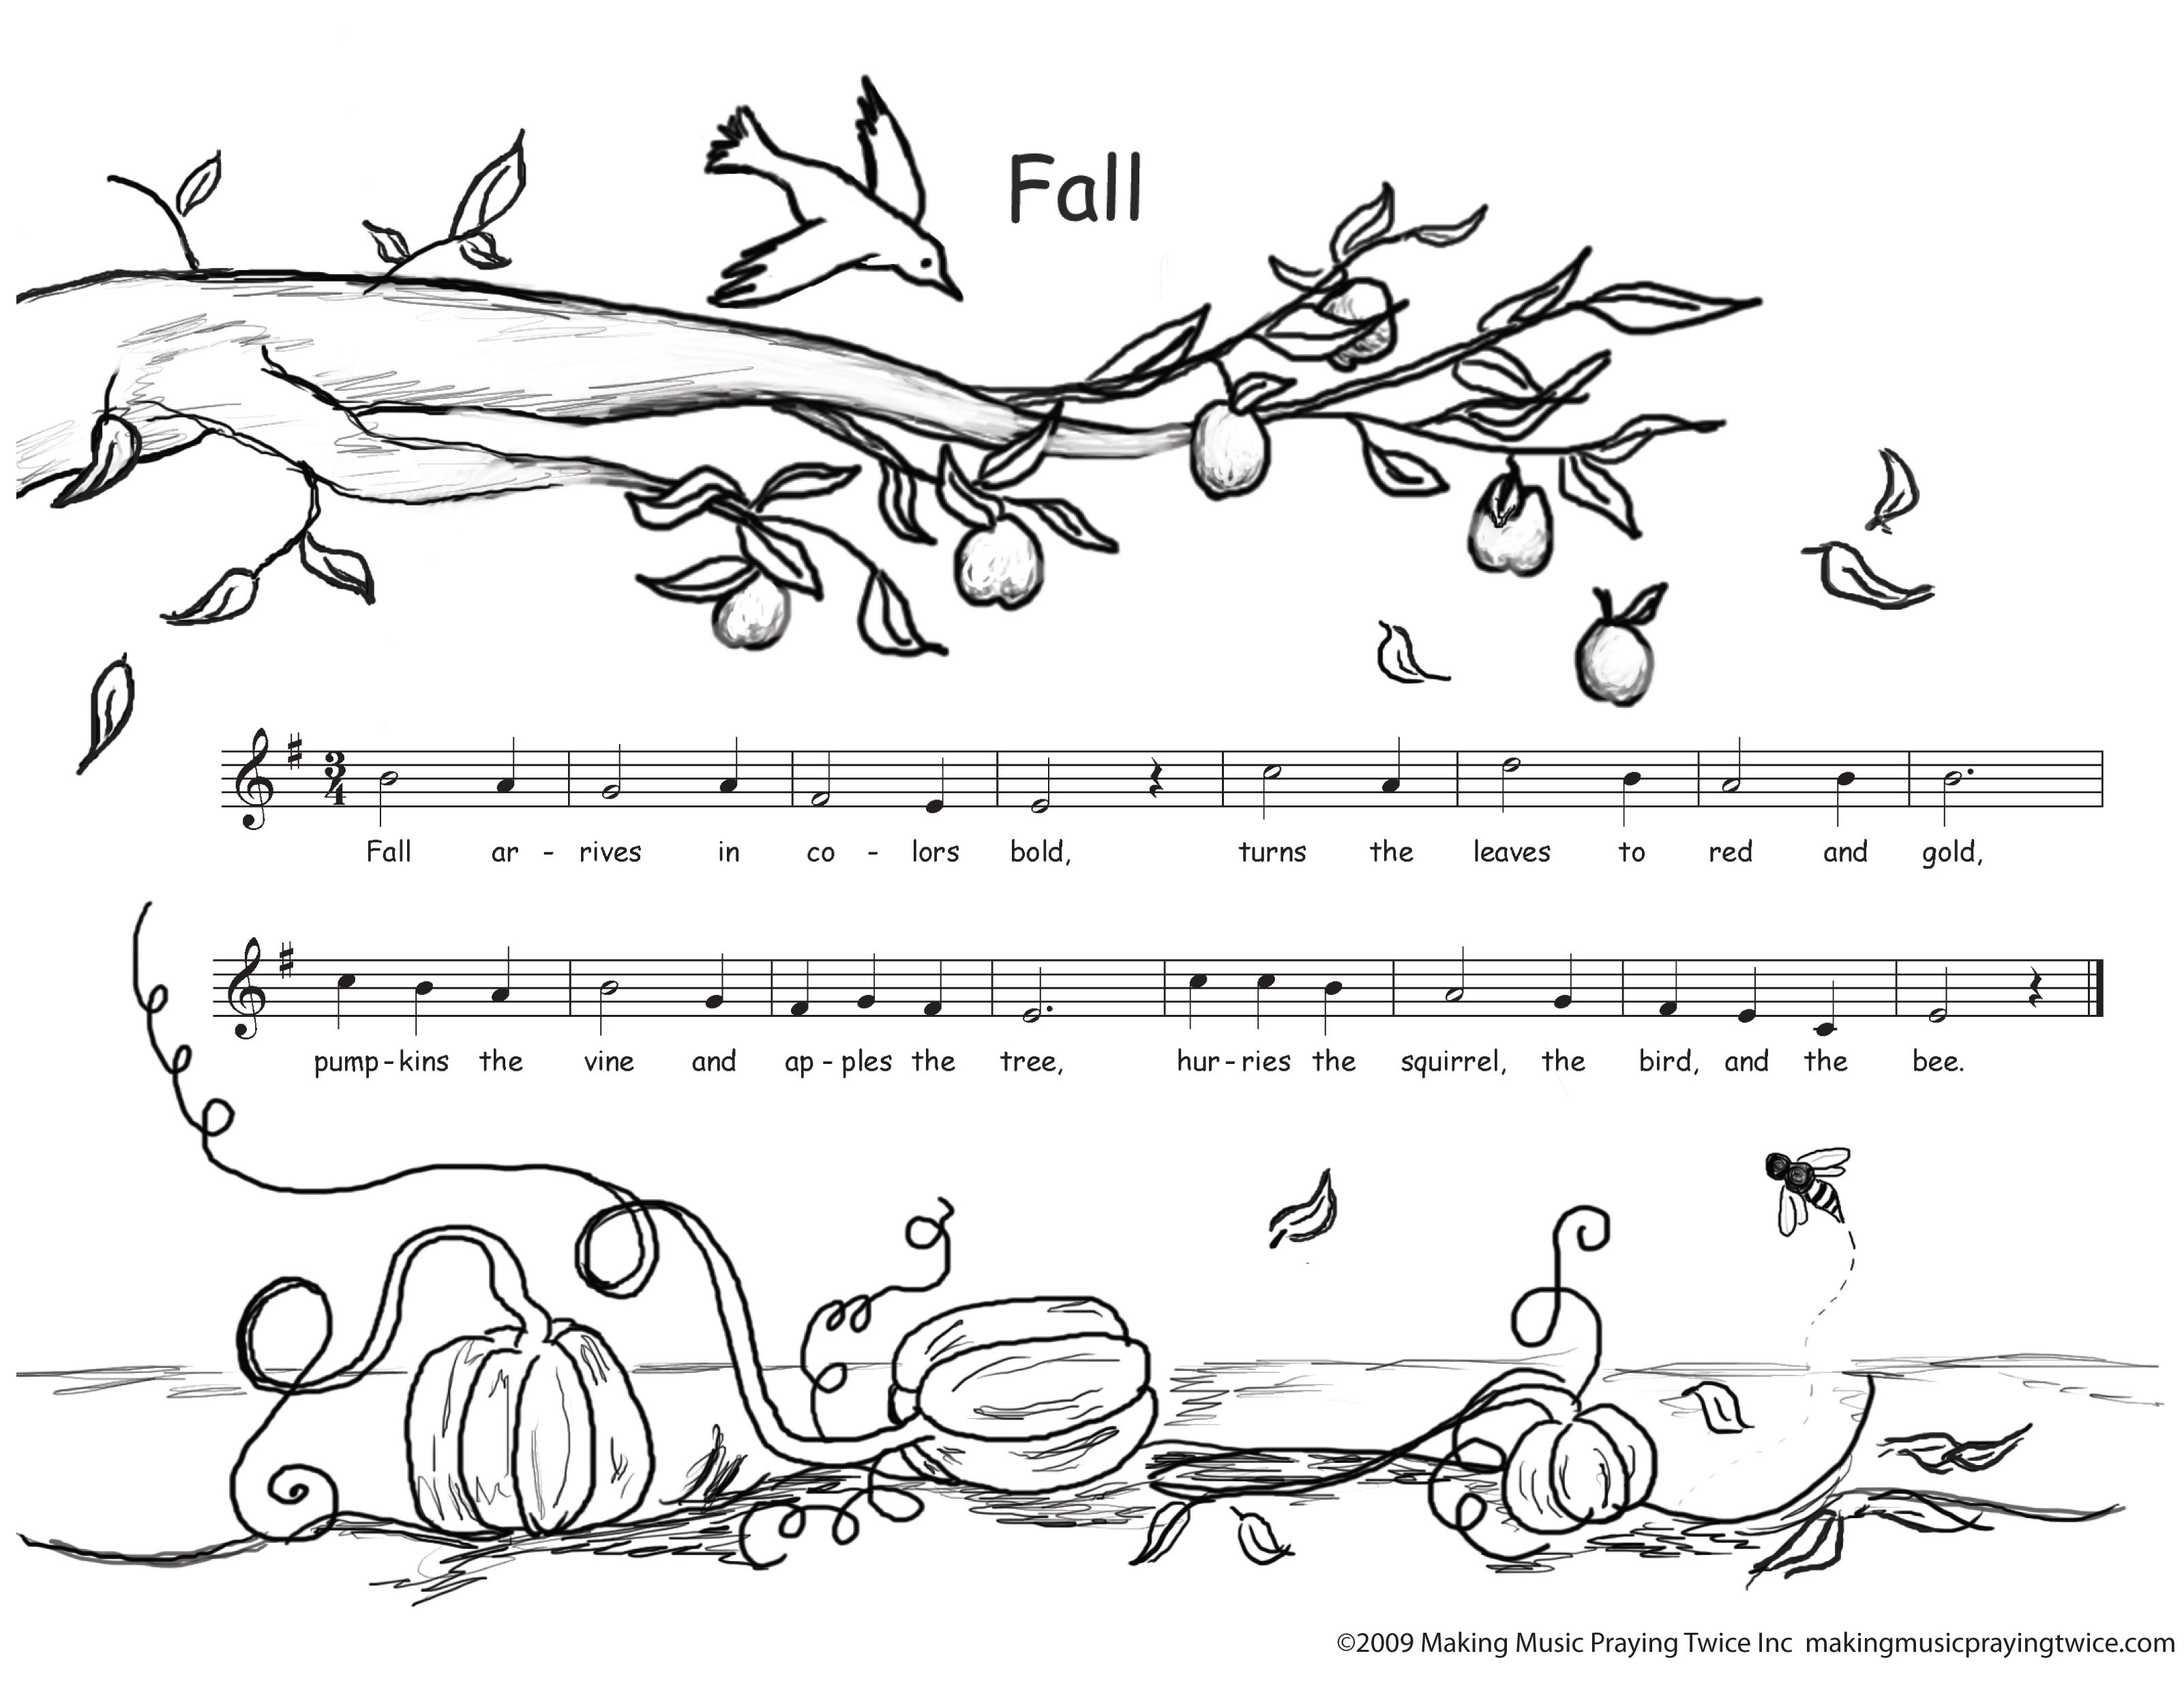 Free coloring page downloads